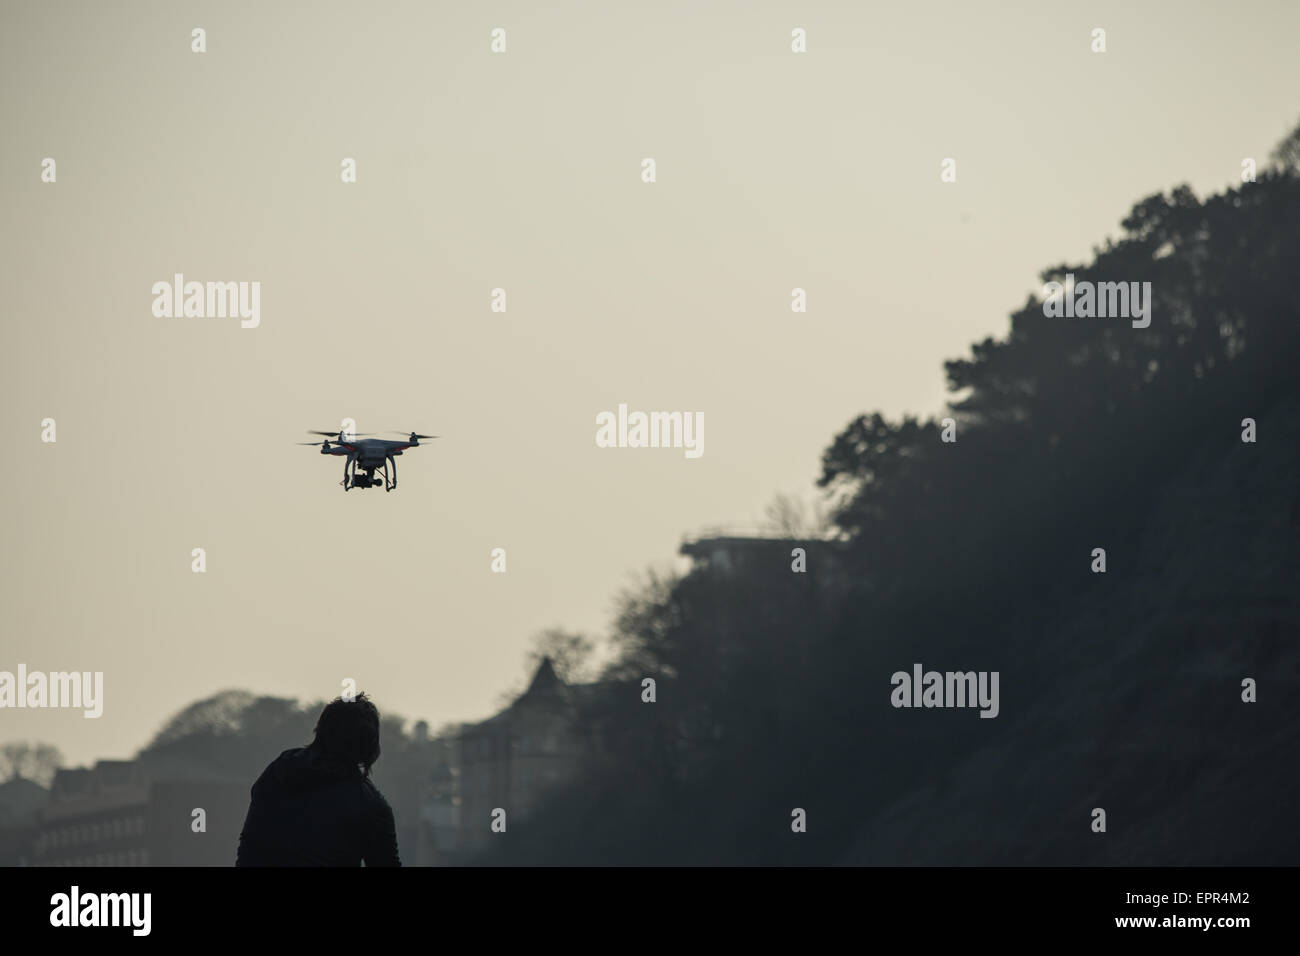 Silhouette of man flying drone over cliffs at the sunset - Stock Image